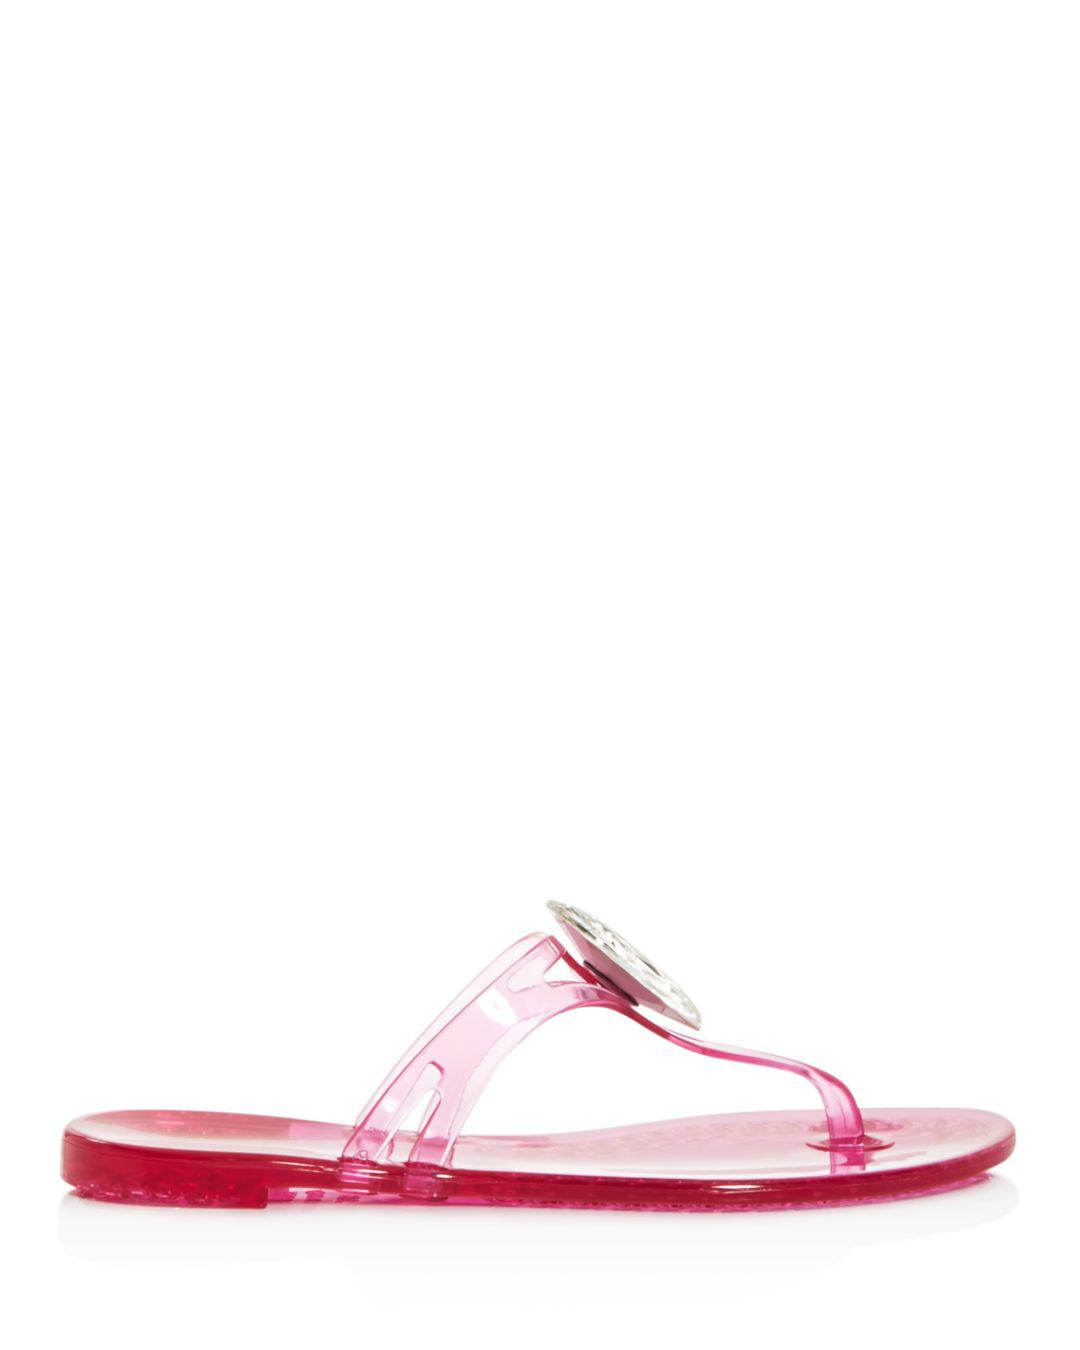 4e6710bc1 Casadei Women s Embellished Jelly Thong Sandals in Pink - Lyst